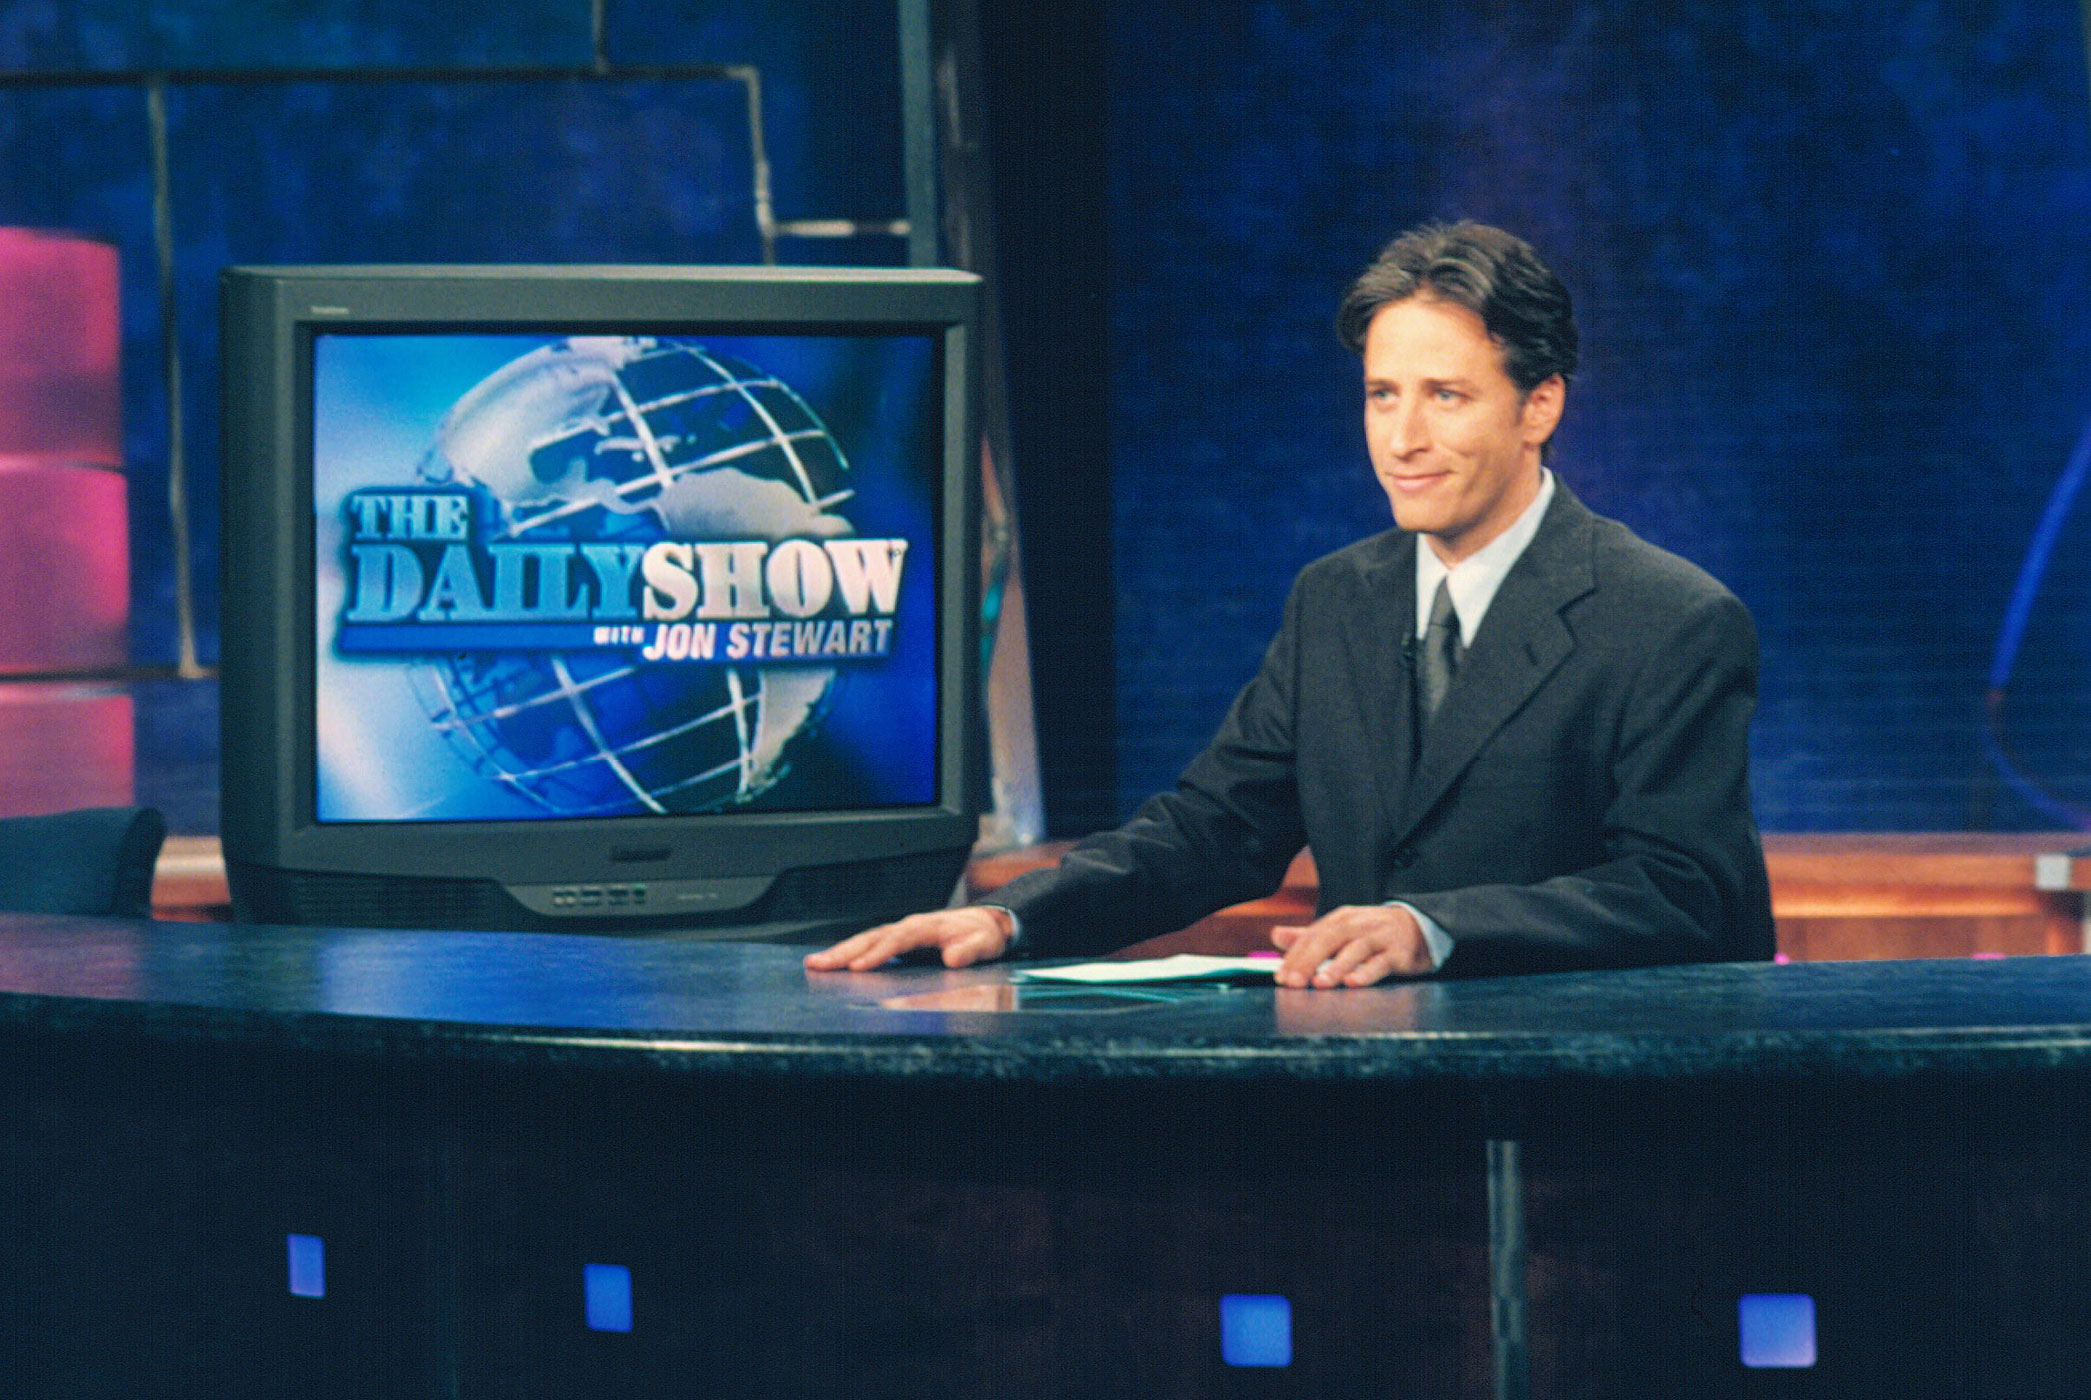 Jon Stewart takes the reins as anchor of <i>The Daily Show</i> in 1999.